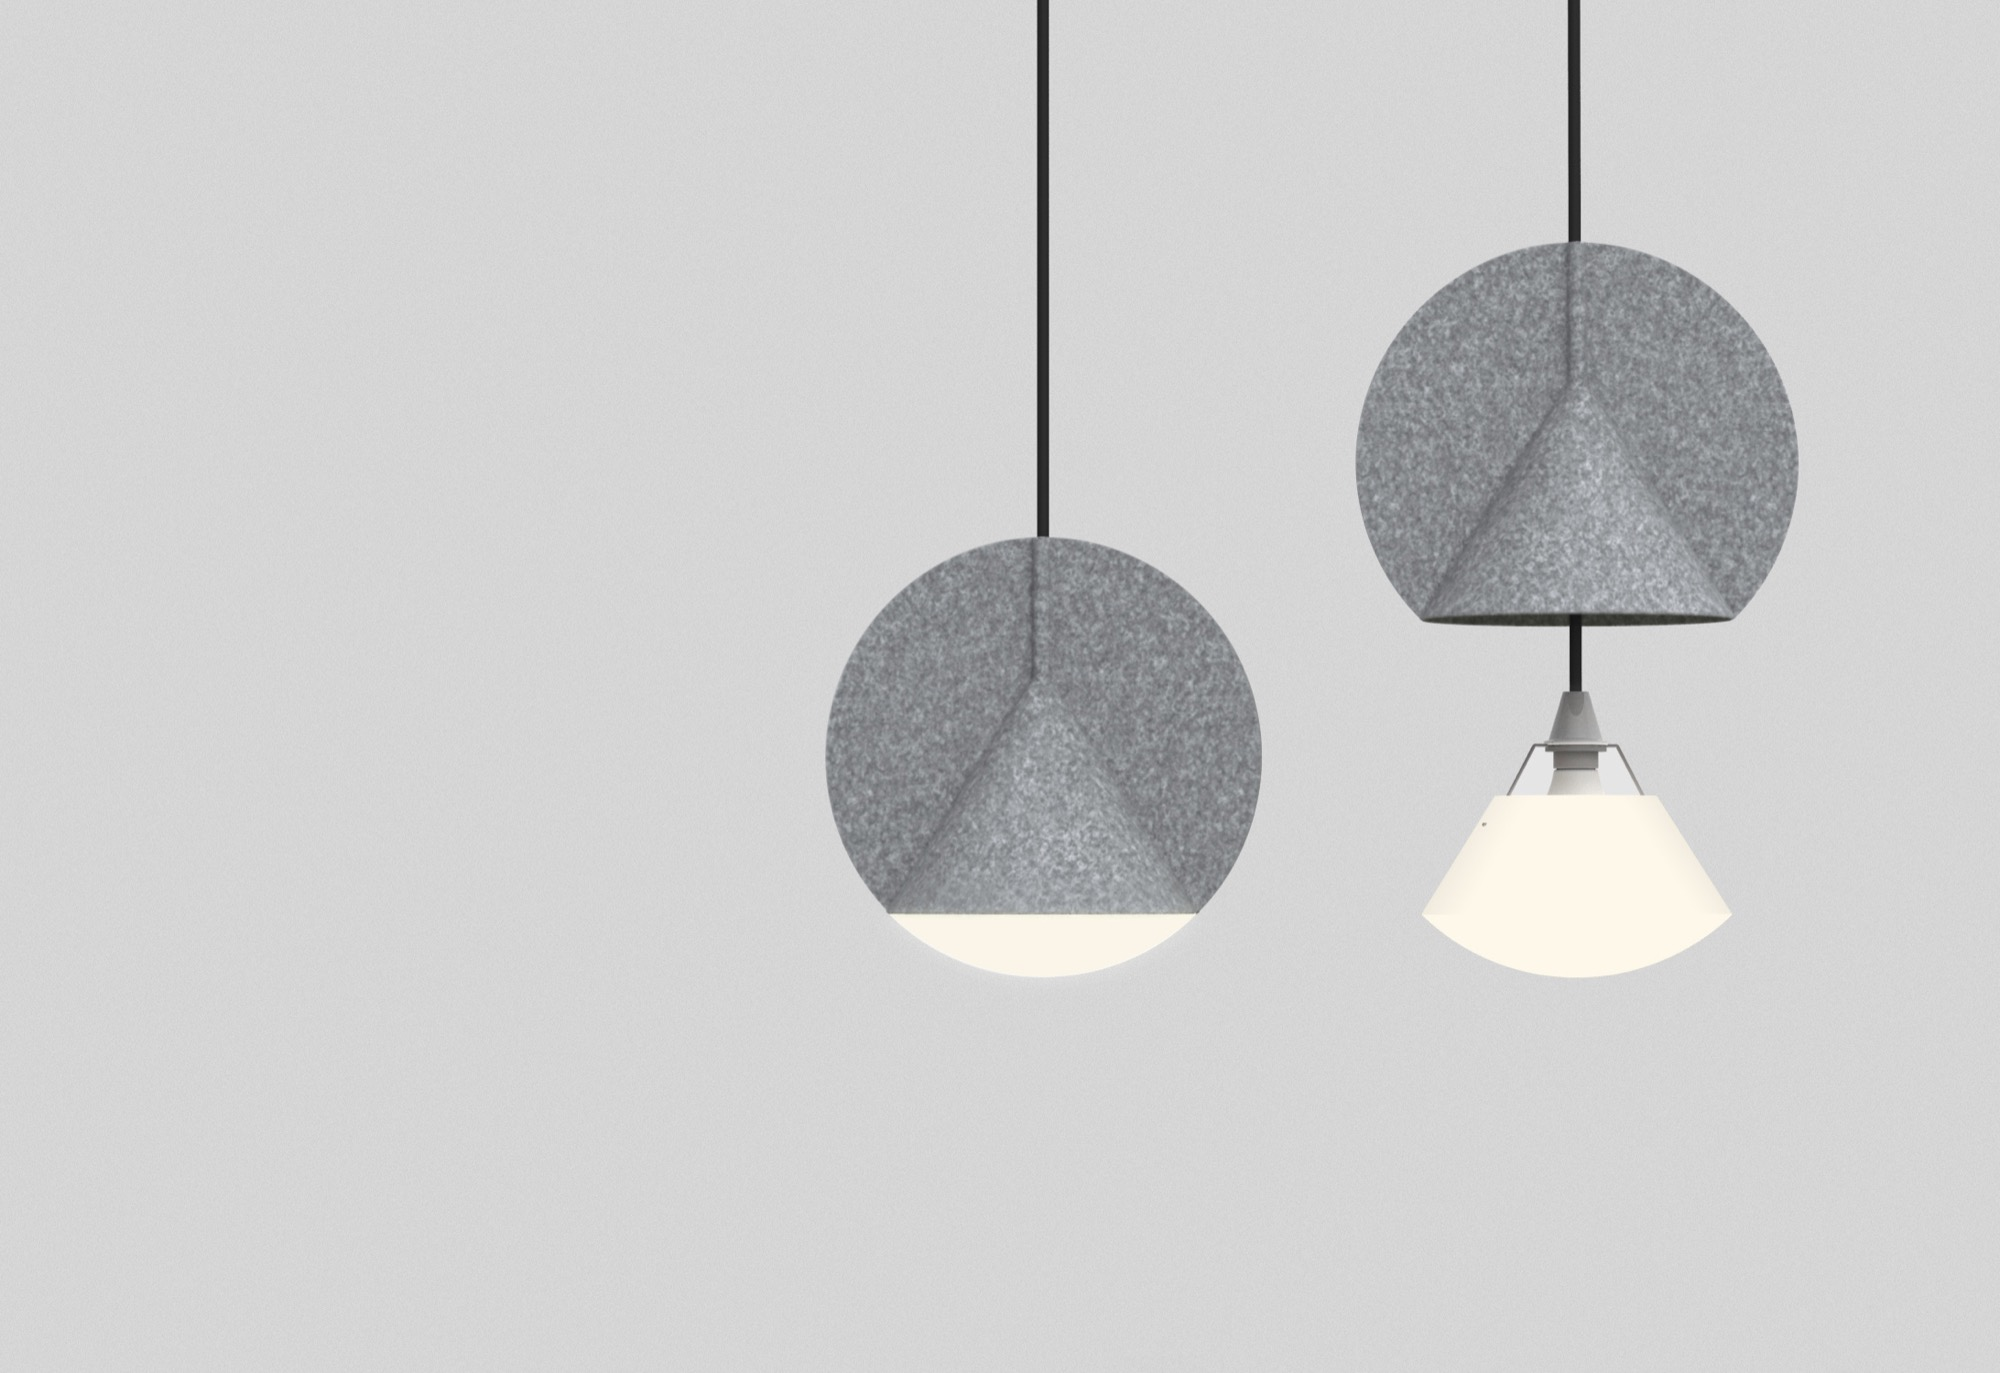 Stamp lamp by OutofStock